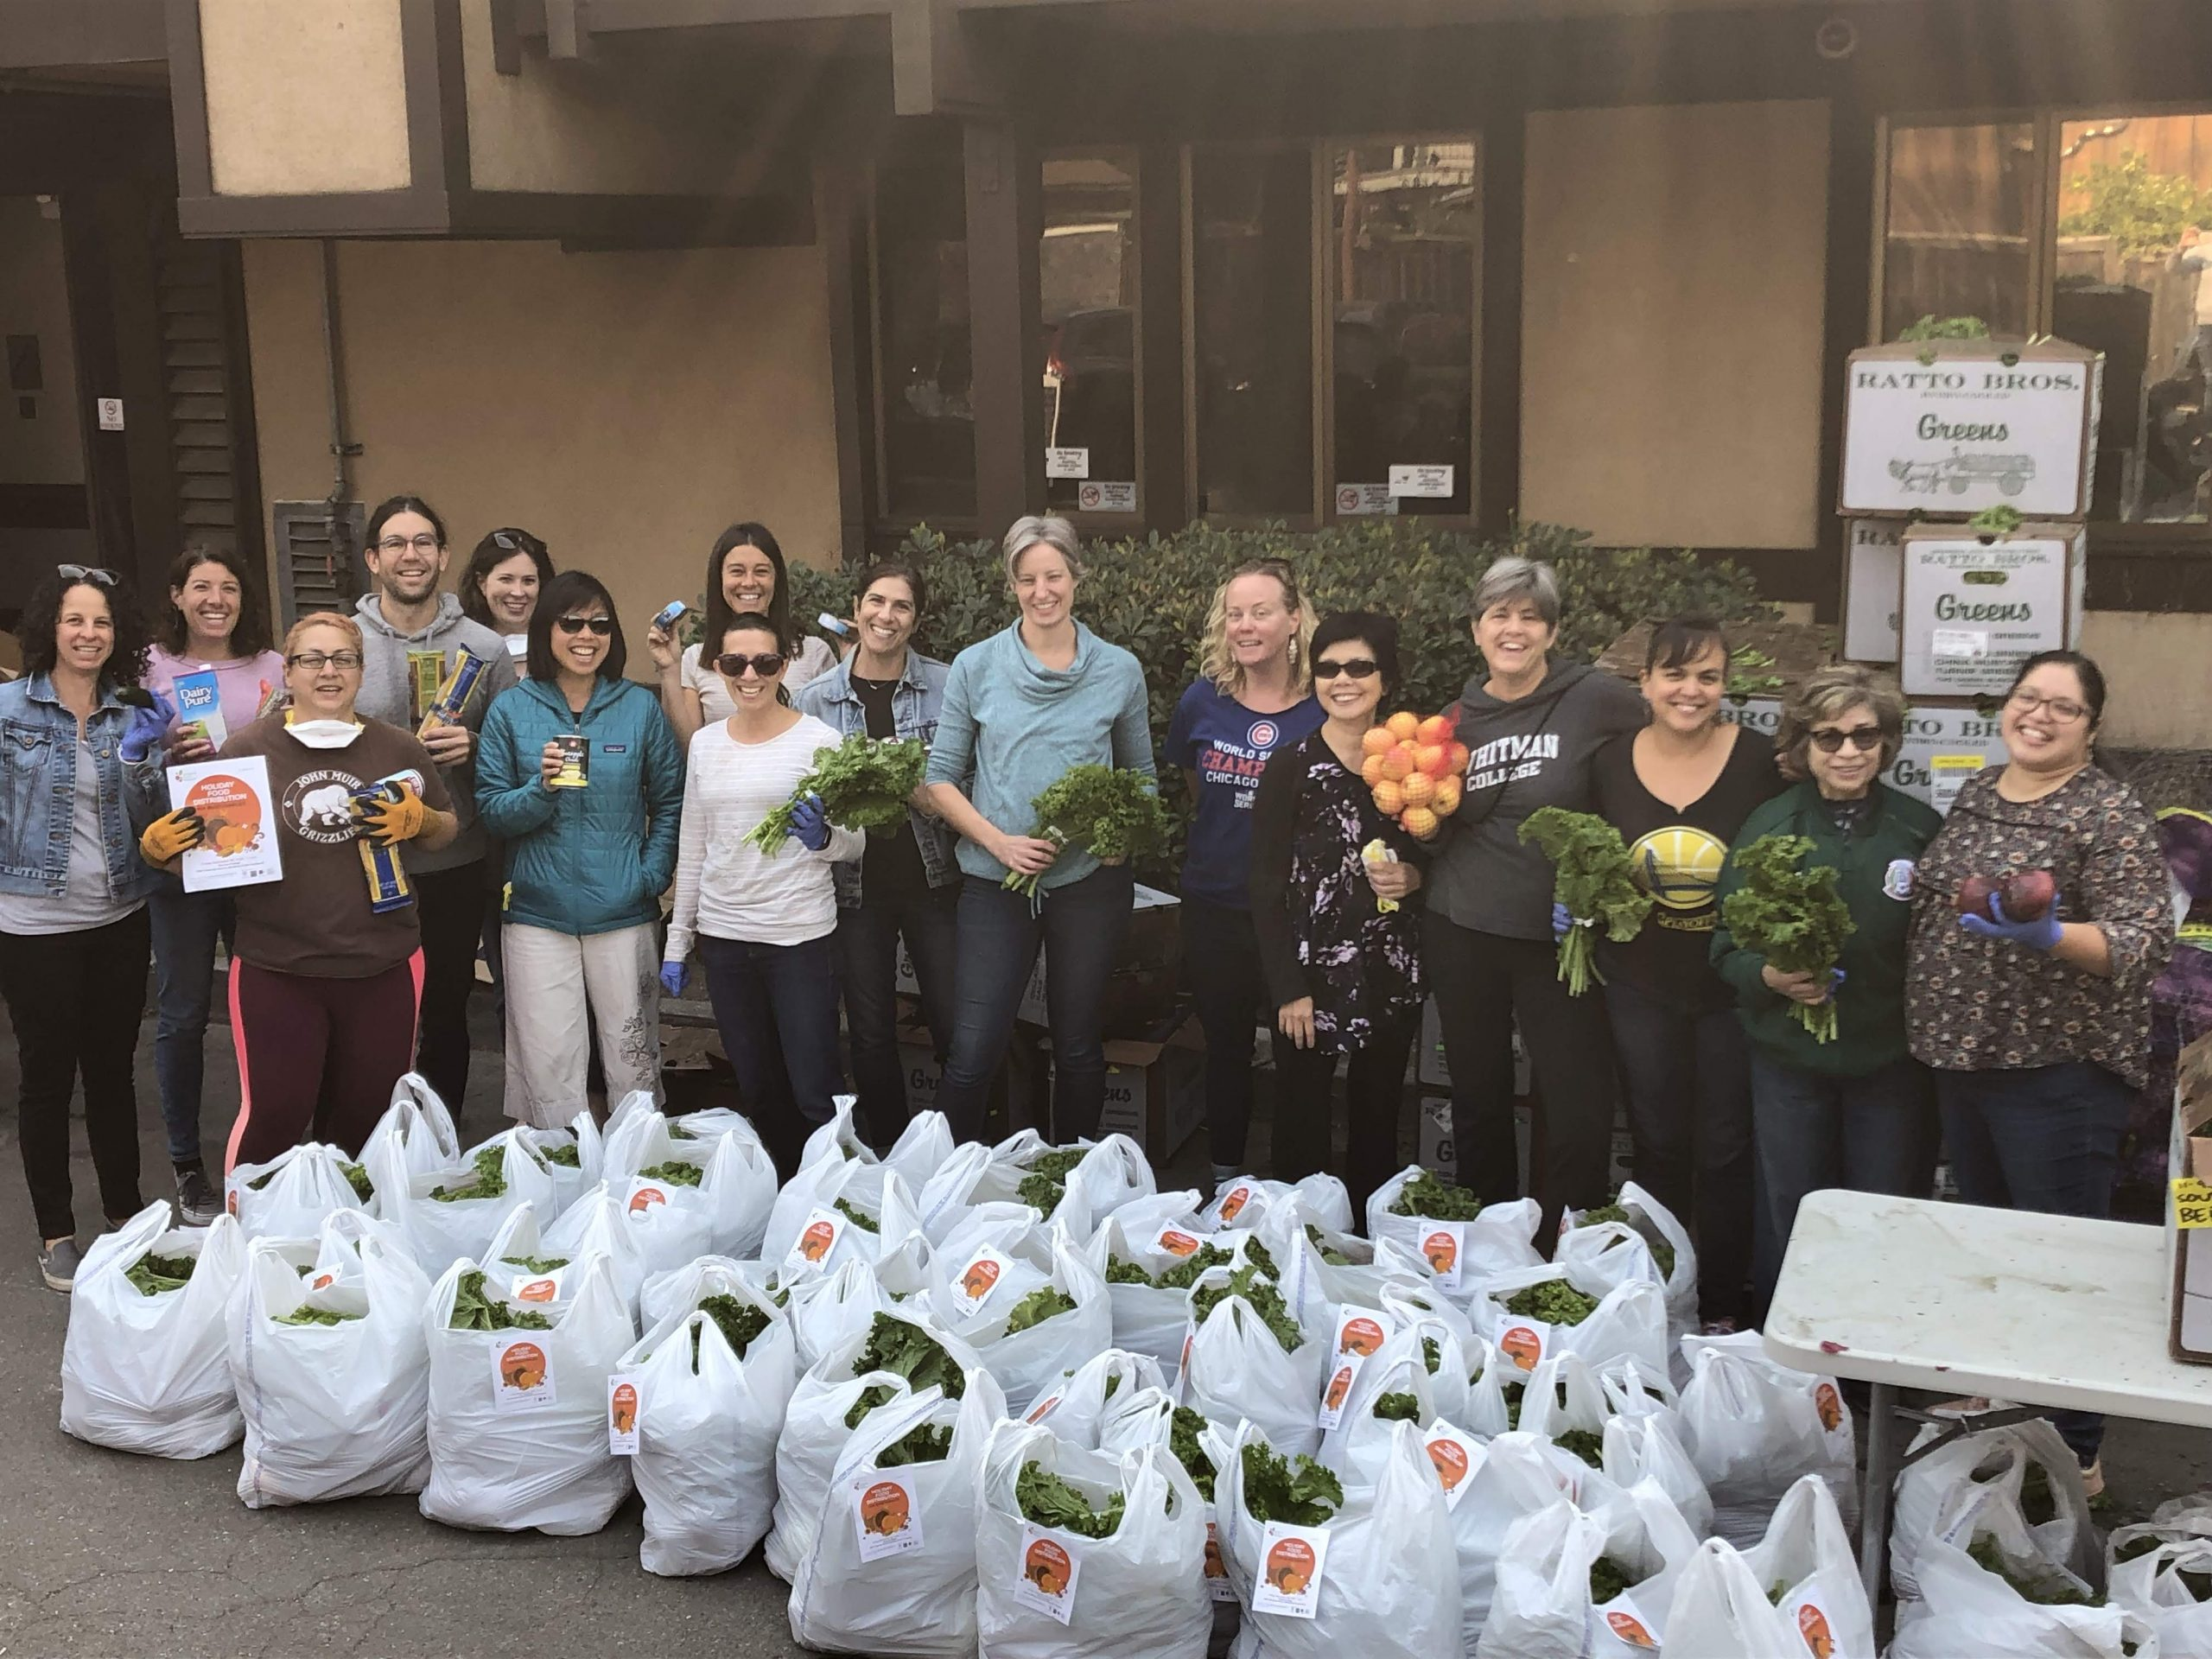 'Game-changing' $600,000 grant from Bayer Fund will support Berkeley Food Network, Alameda County Community Food Bank